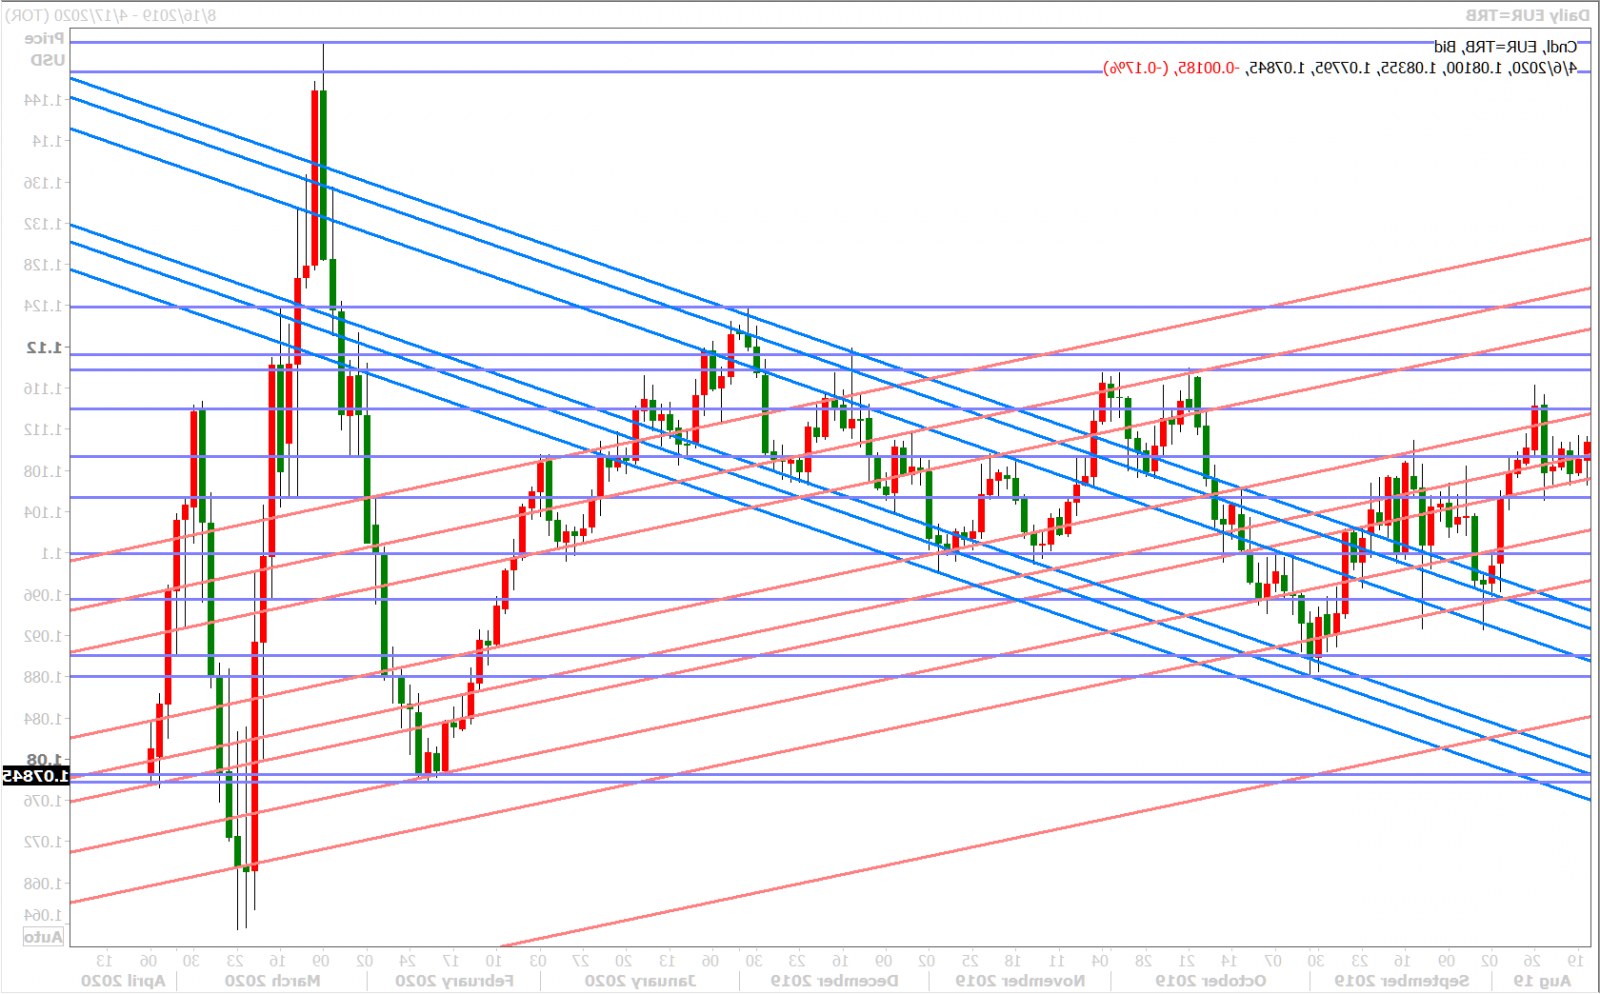 Is the EUR USD a buy or a sell?